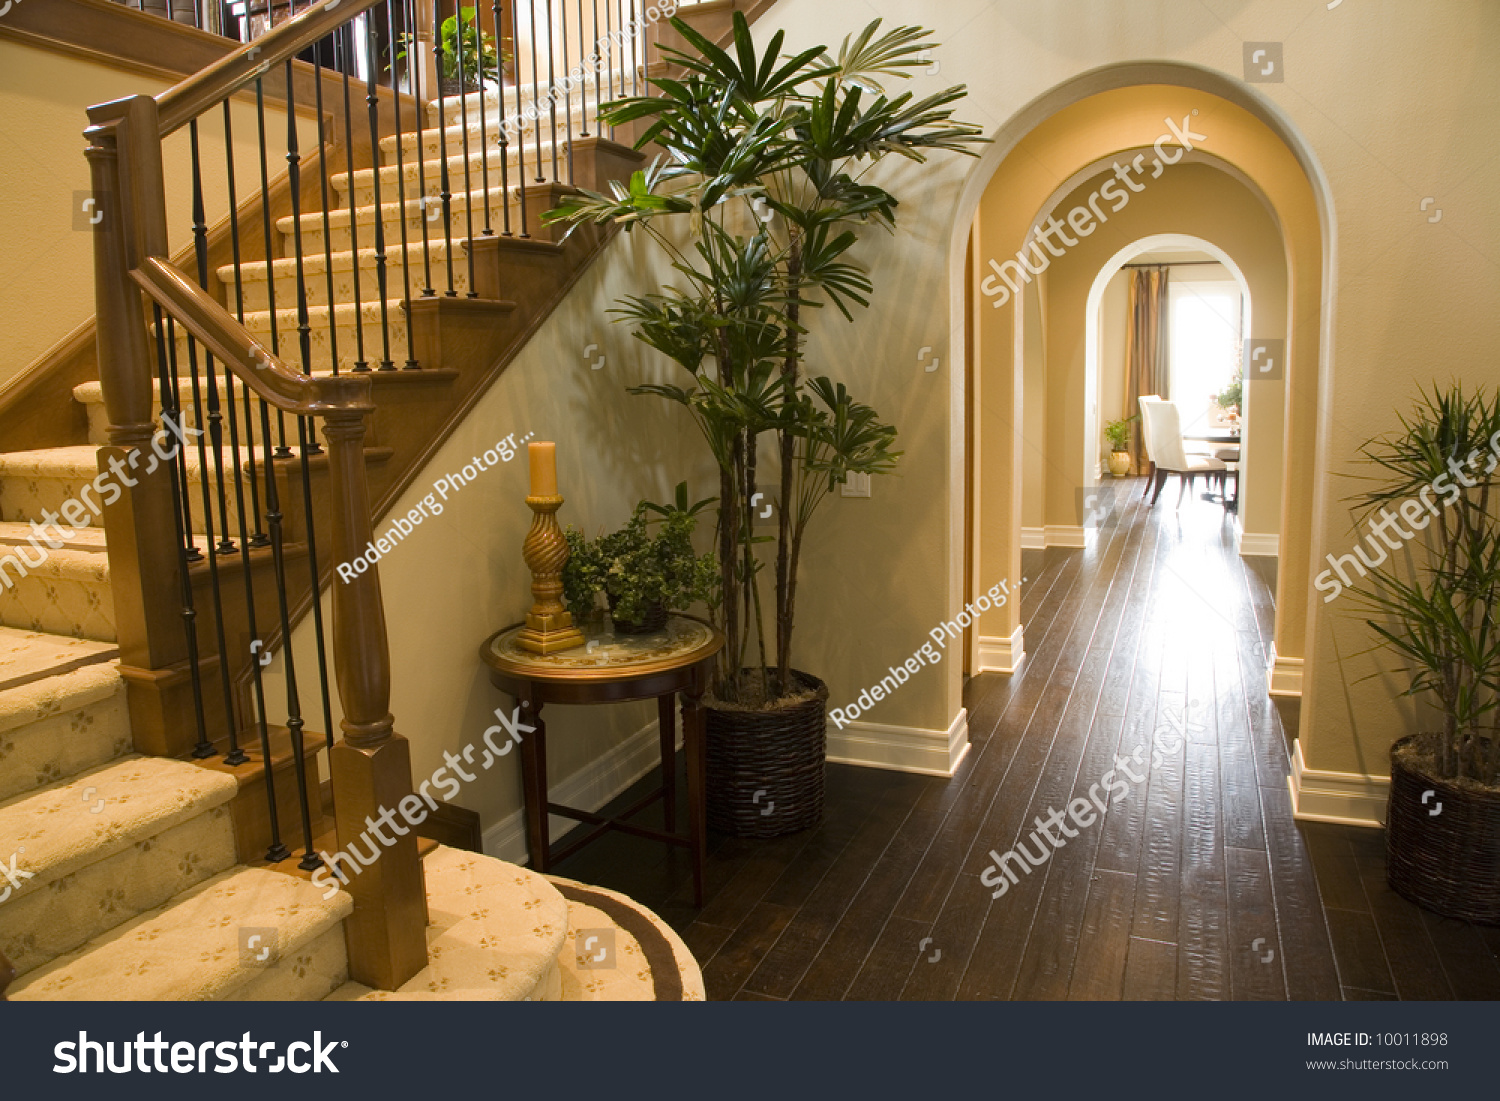 Mansion Hallway With Staircase And Luxurious Decor.